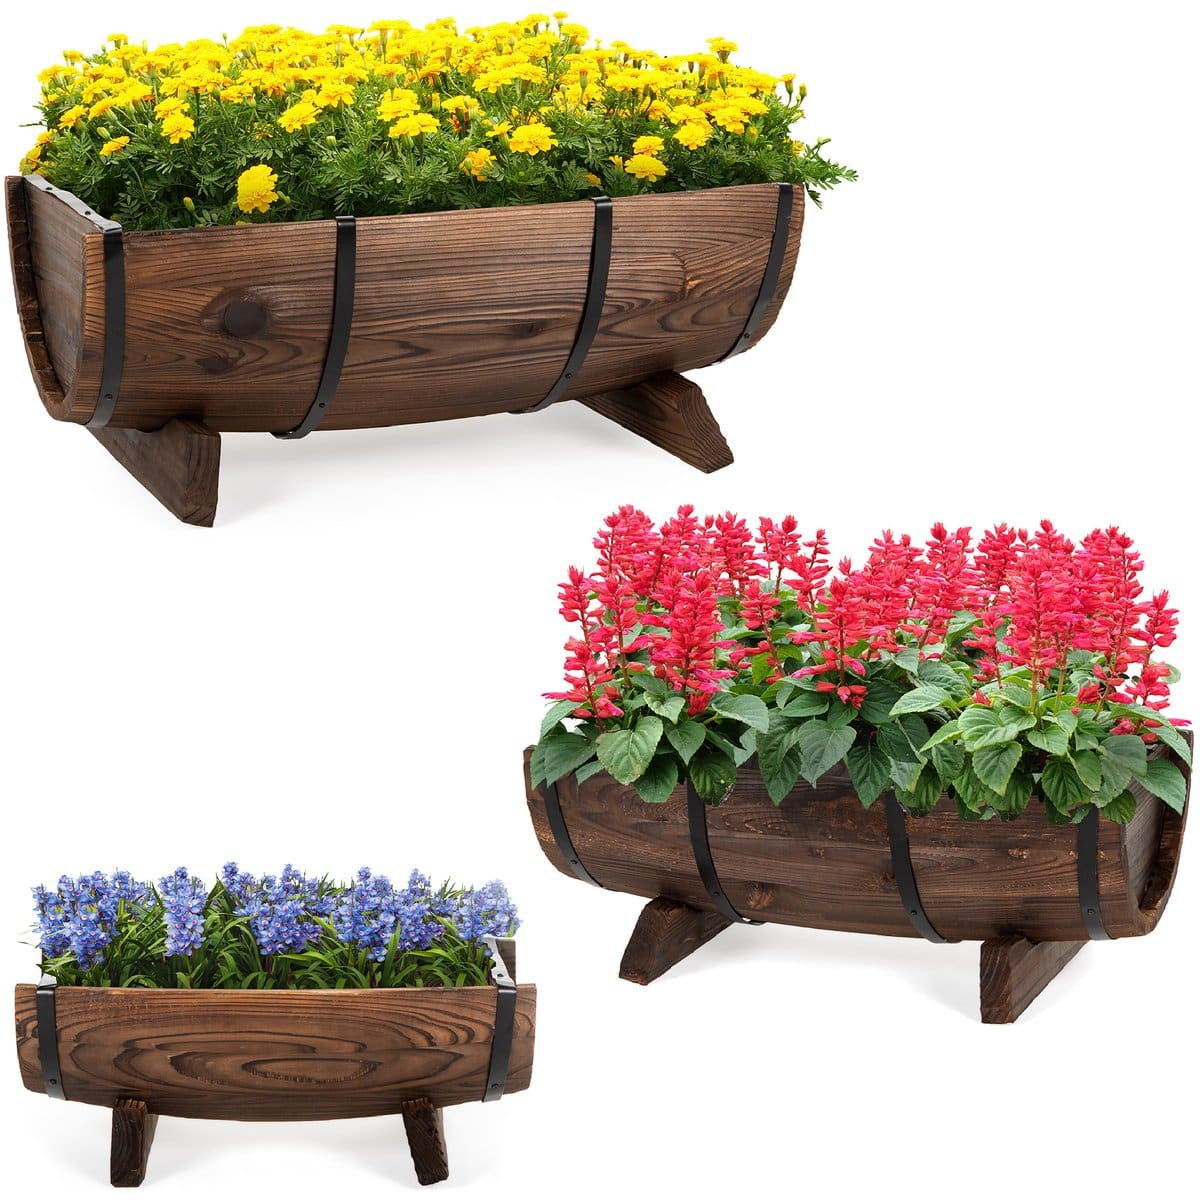 Set of 3 Rustic Wood Half Barrel Garden Planters Set w/ Drainage Hole $69.99 + Free shipping. Best Choice Products